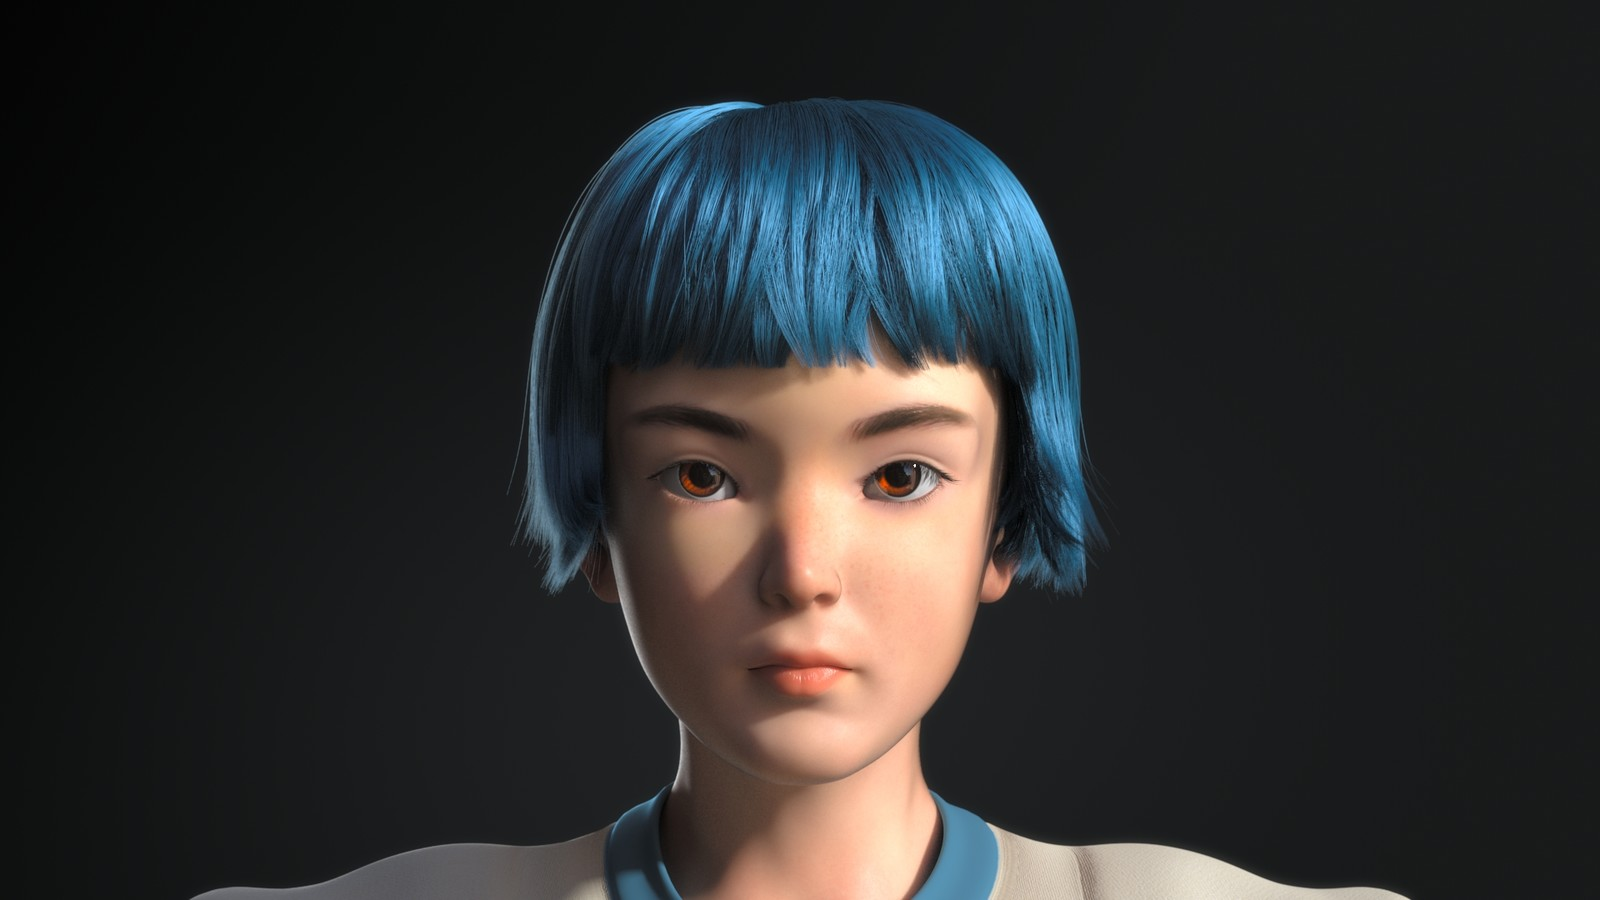 1080 render 1.5x thickness on the hair